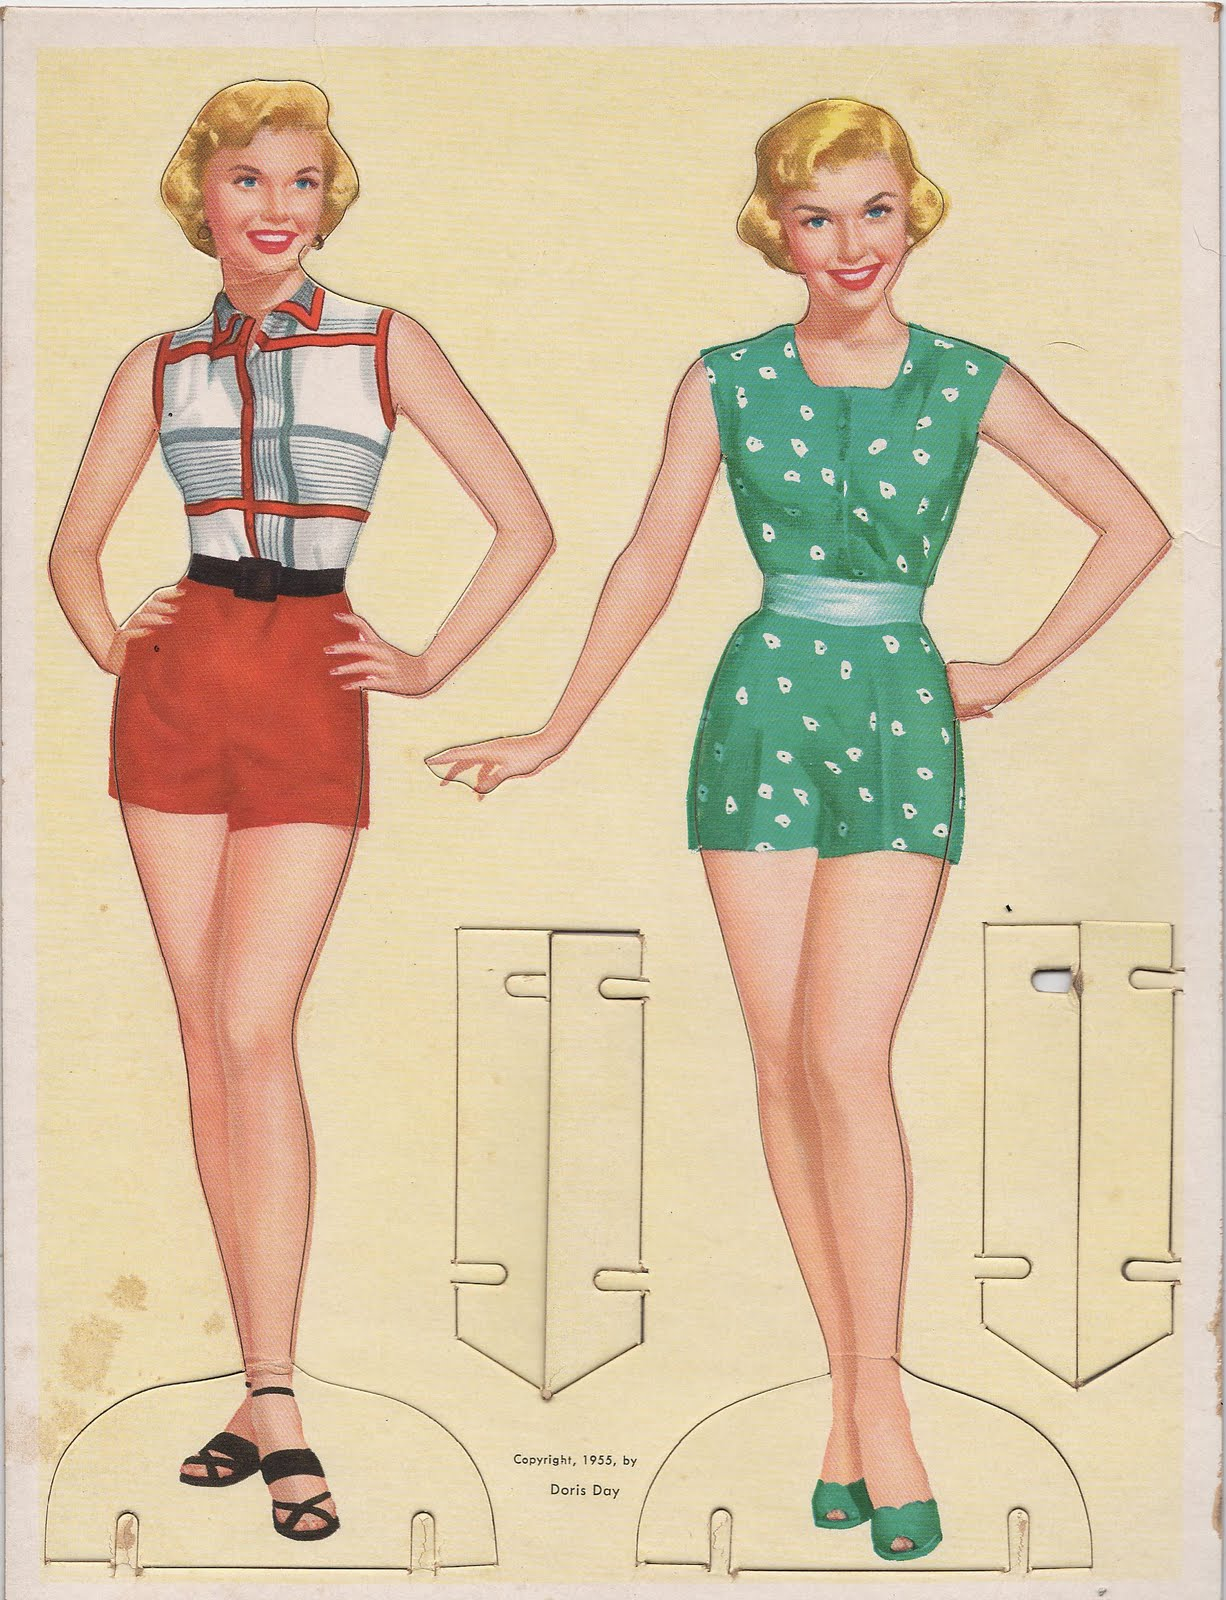 vintage paper dolls Judy's place offering paper dolls including dress up paper dolls, vintage paper dolls, and celebrity paper dolls.